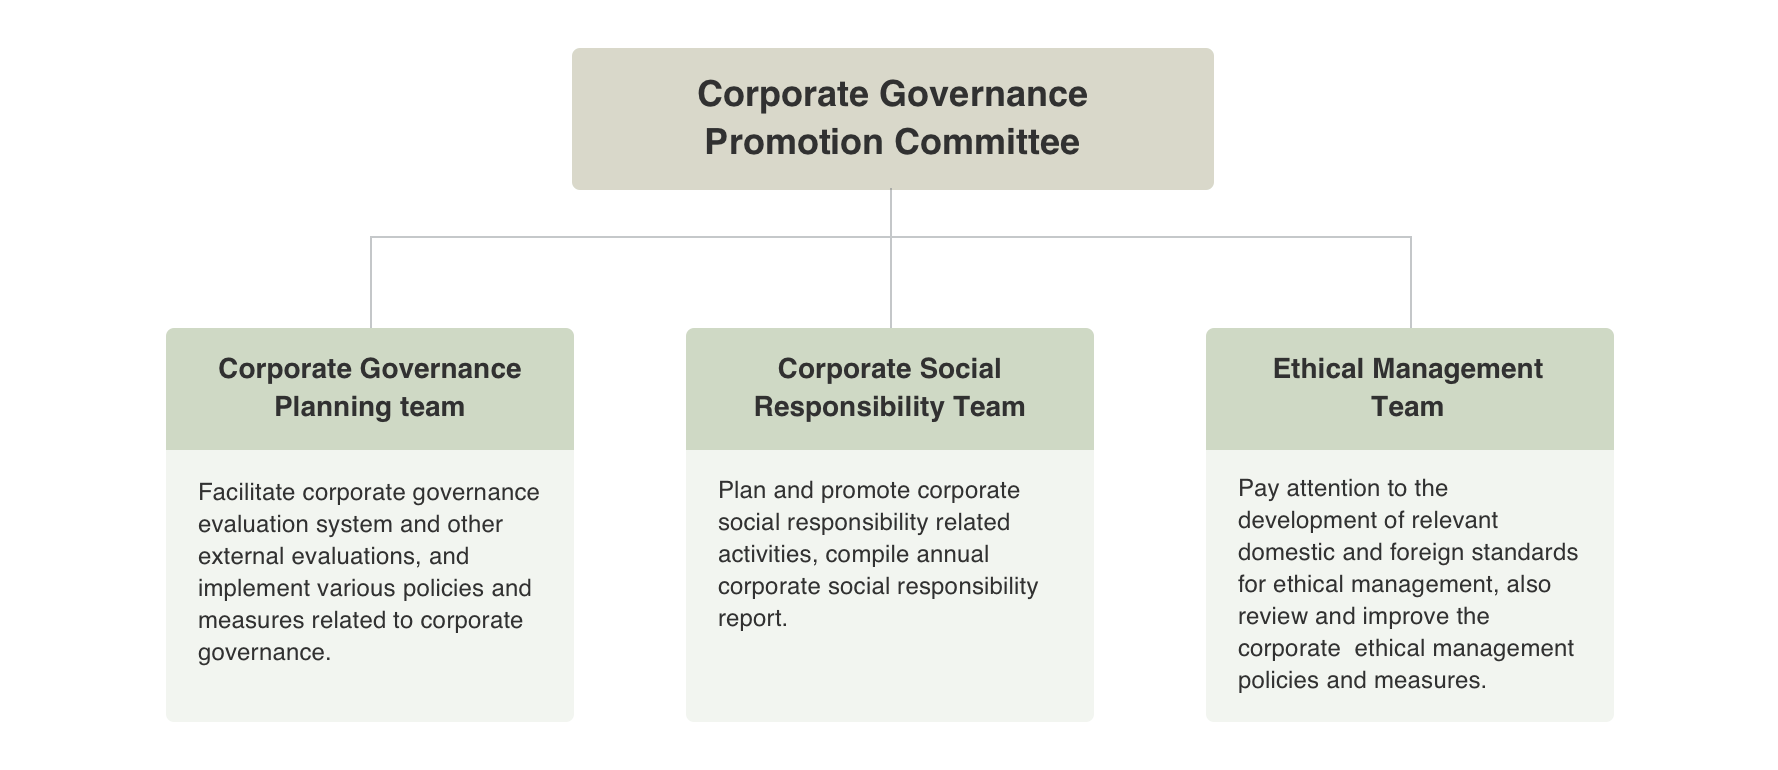 Corporate Governance Promotion Committee